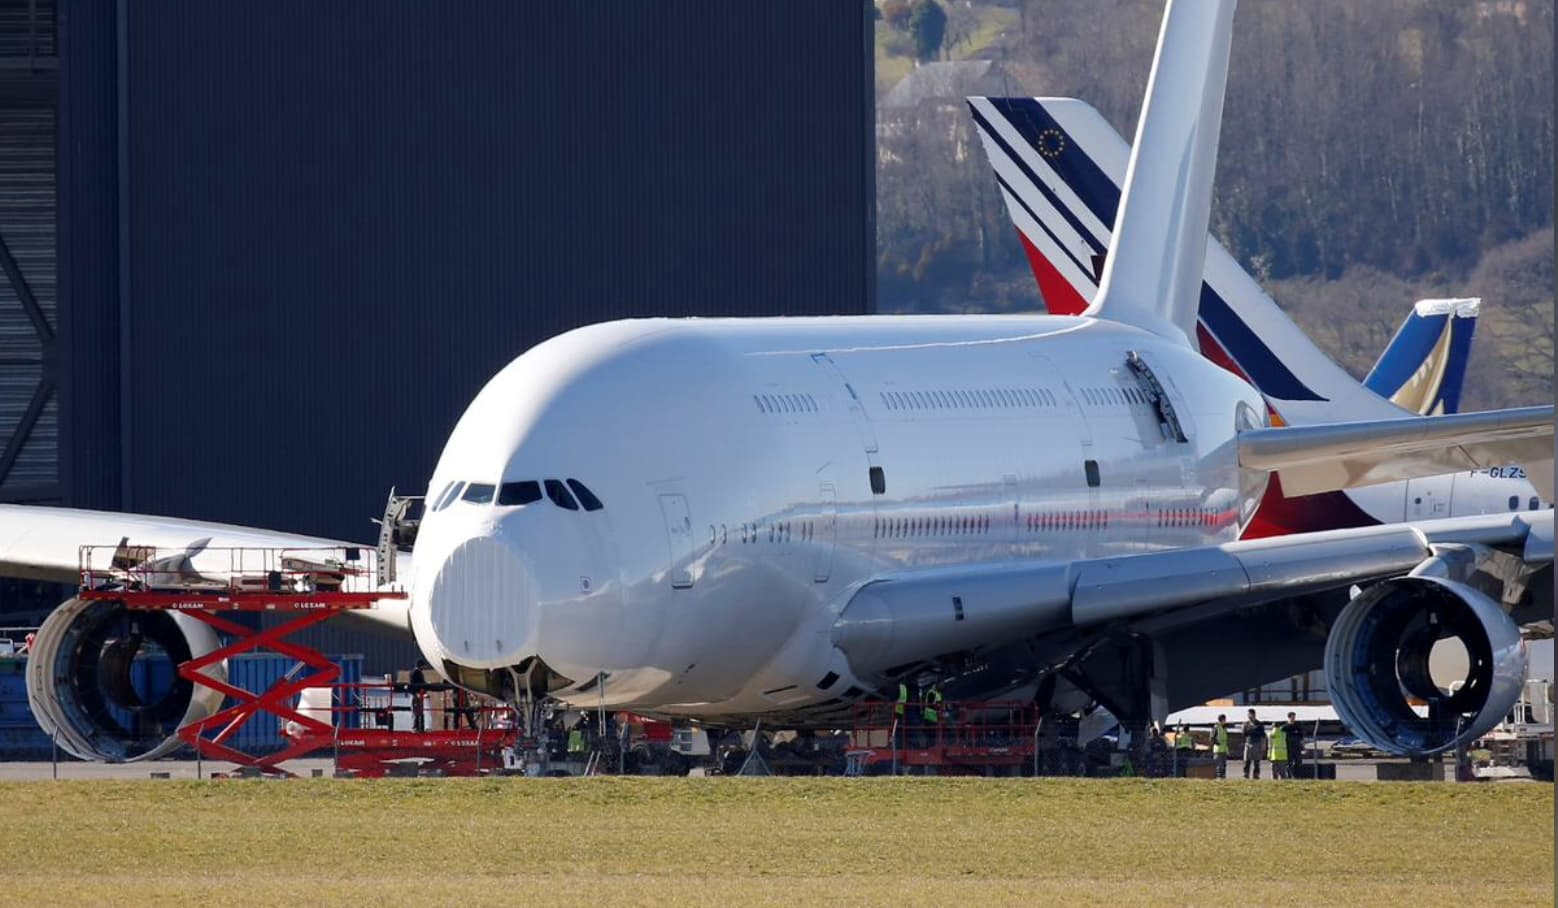 An A380 Airbus superjumbo sits on the tarmac where it is dismantled at the site of French recycling and storage aerospace company Tarmac Aerosave in Tarbes, southwest France, February 14, 2019. REUTERS/Regis Duvignau